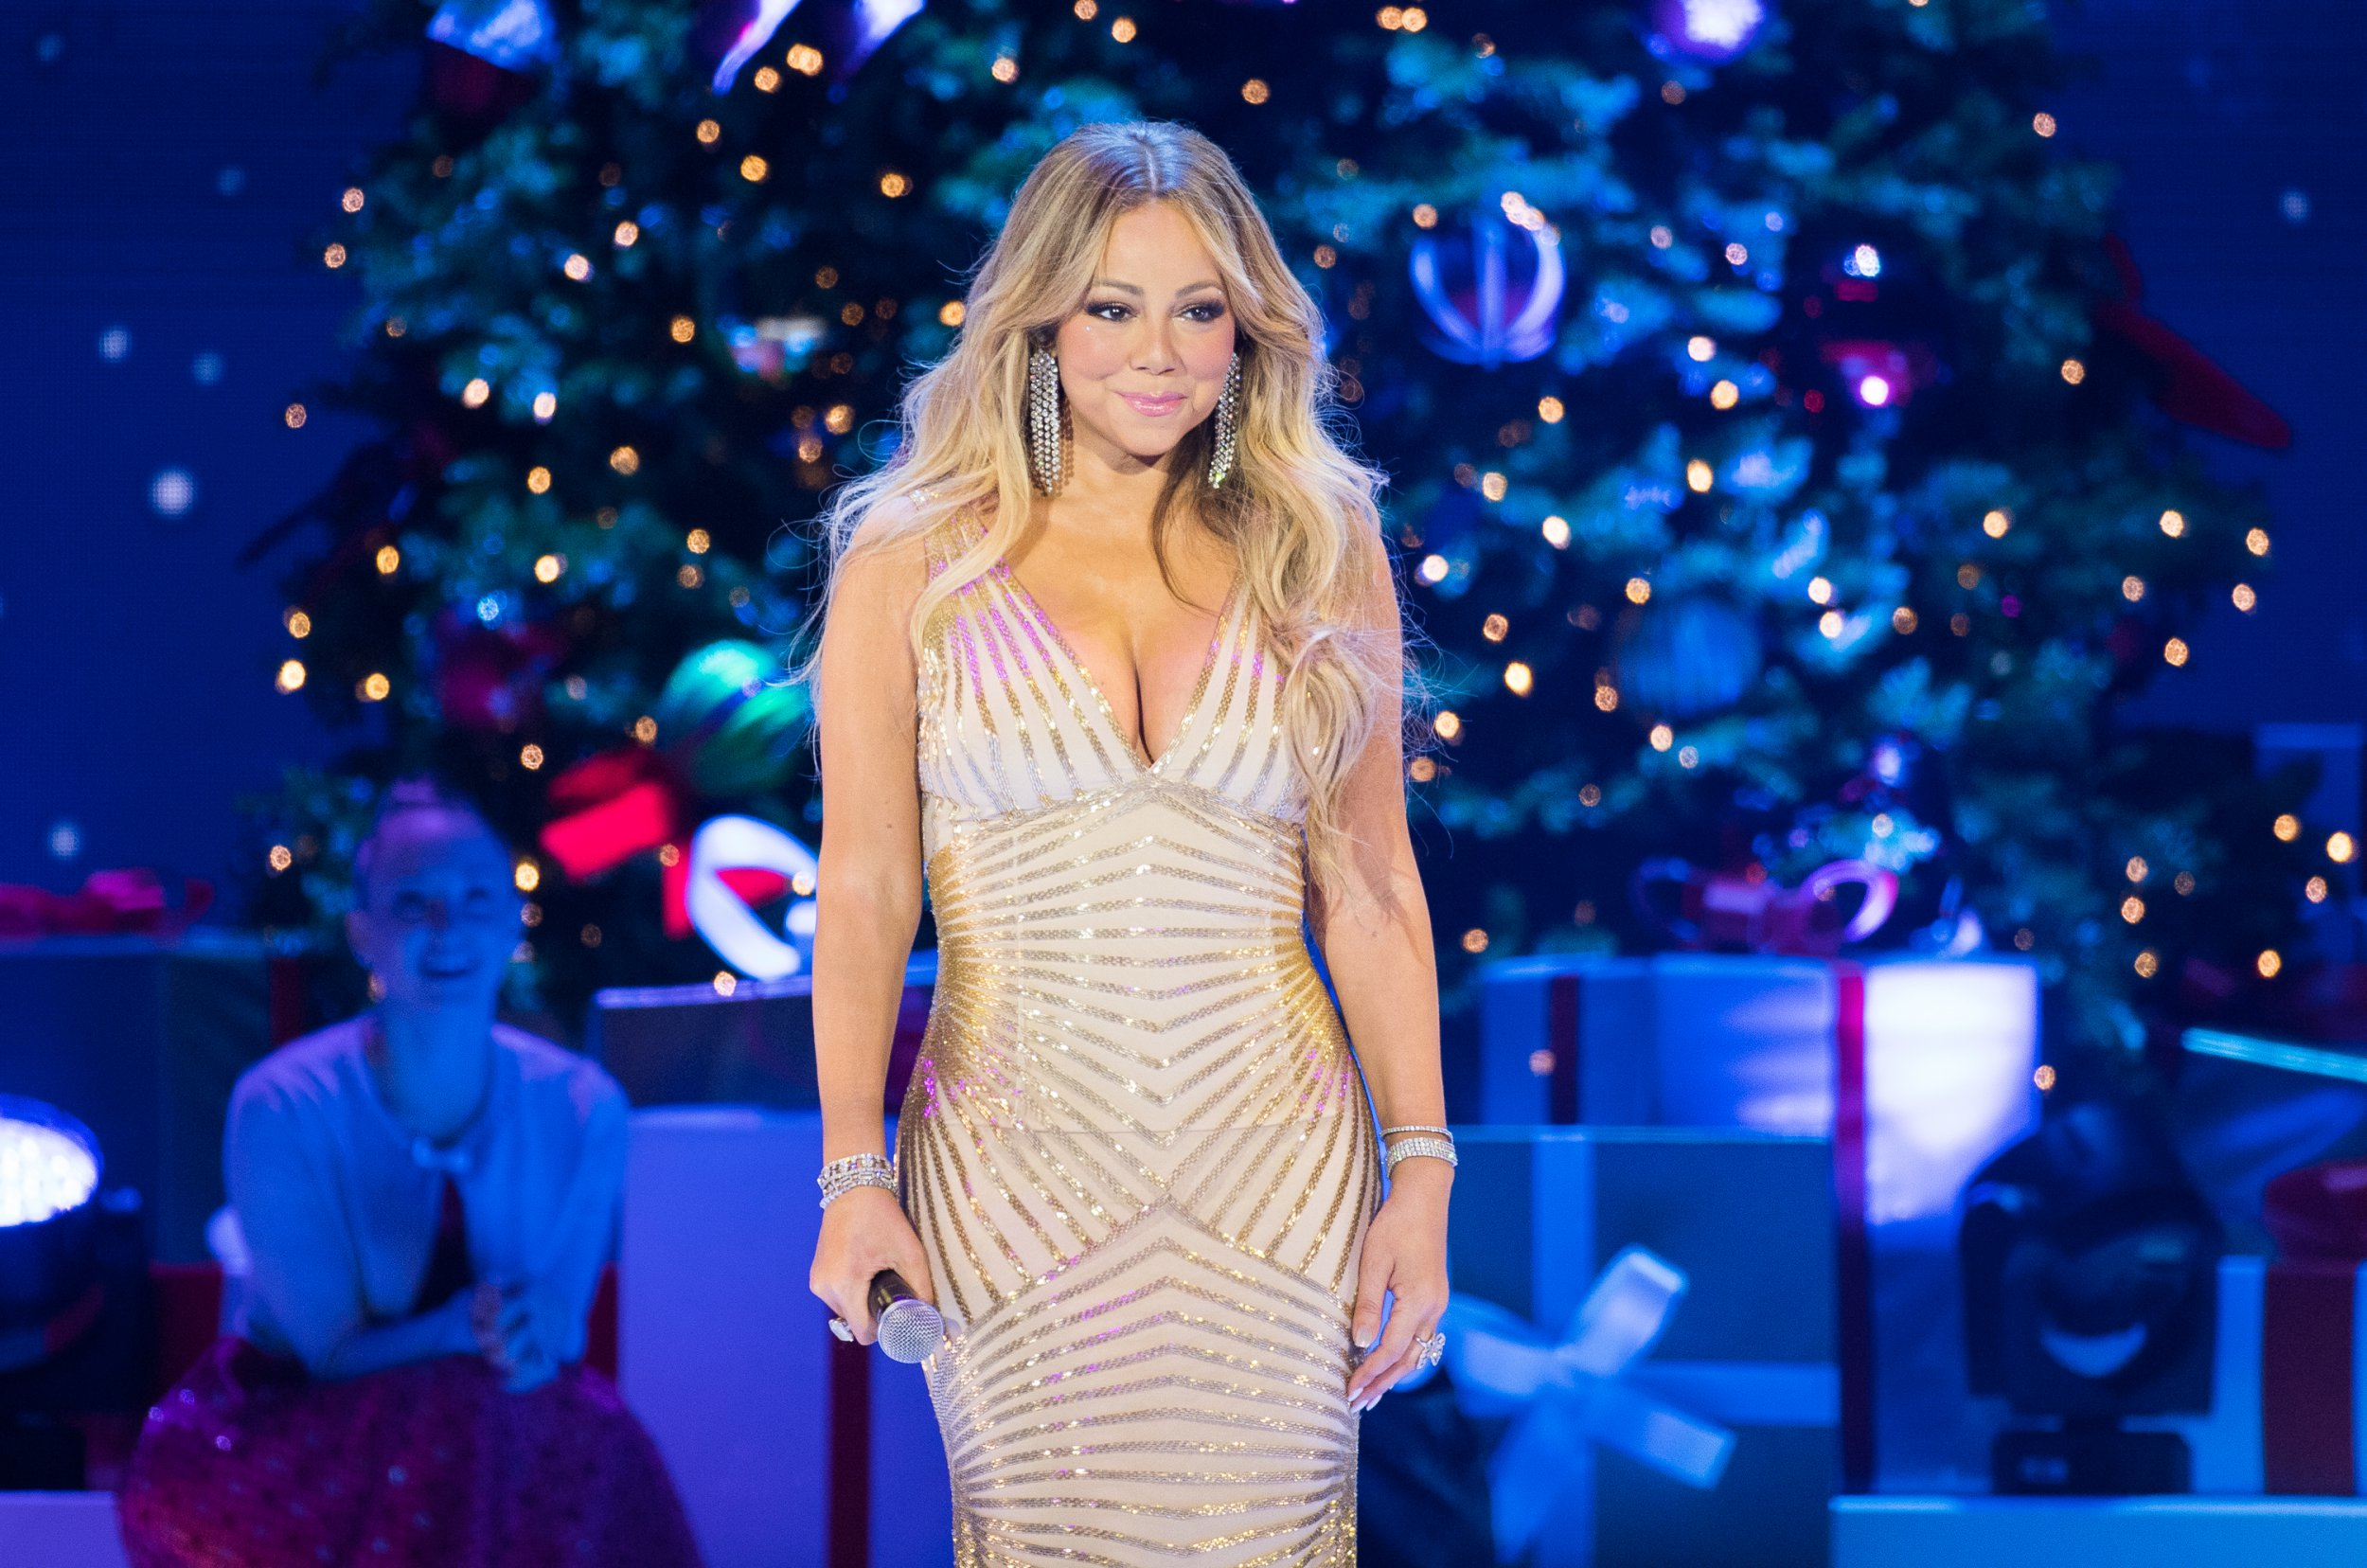 London drag queen 'denied entry to Mariah Carey Christmas show for being in drag'